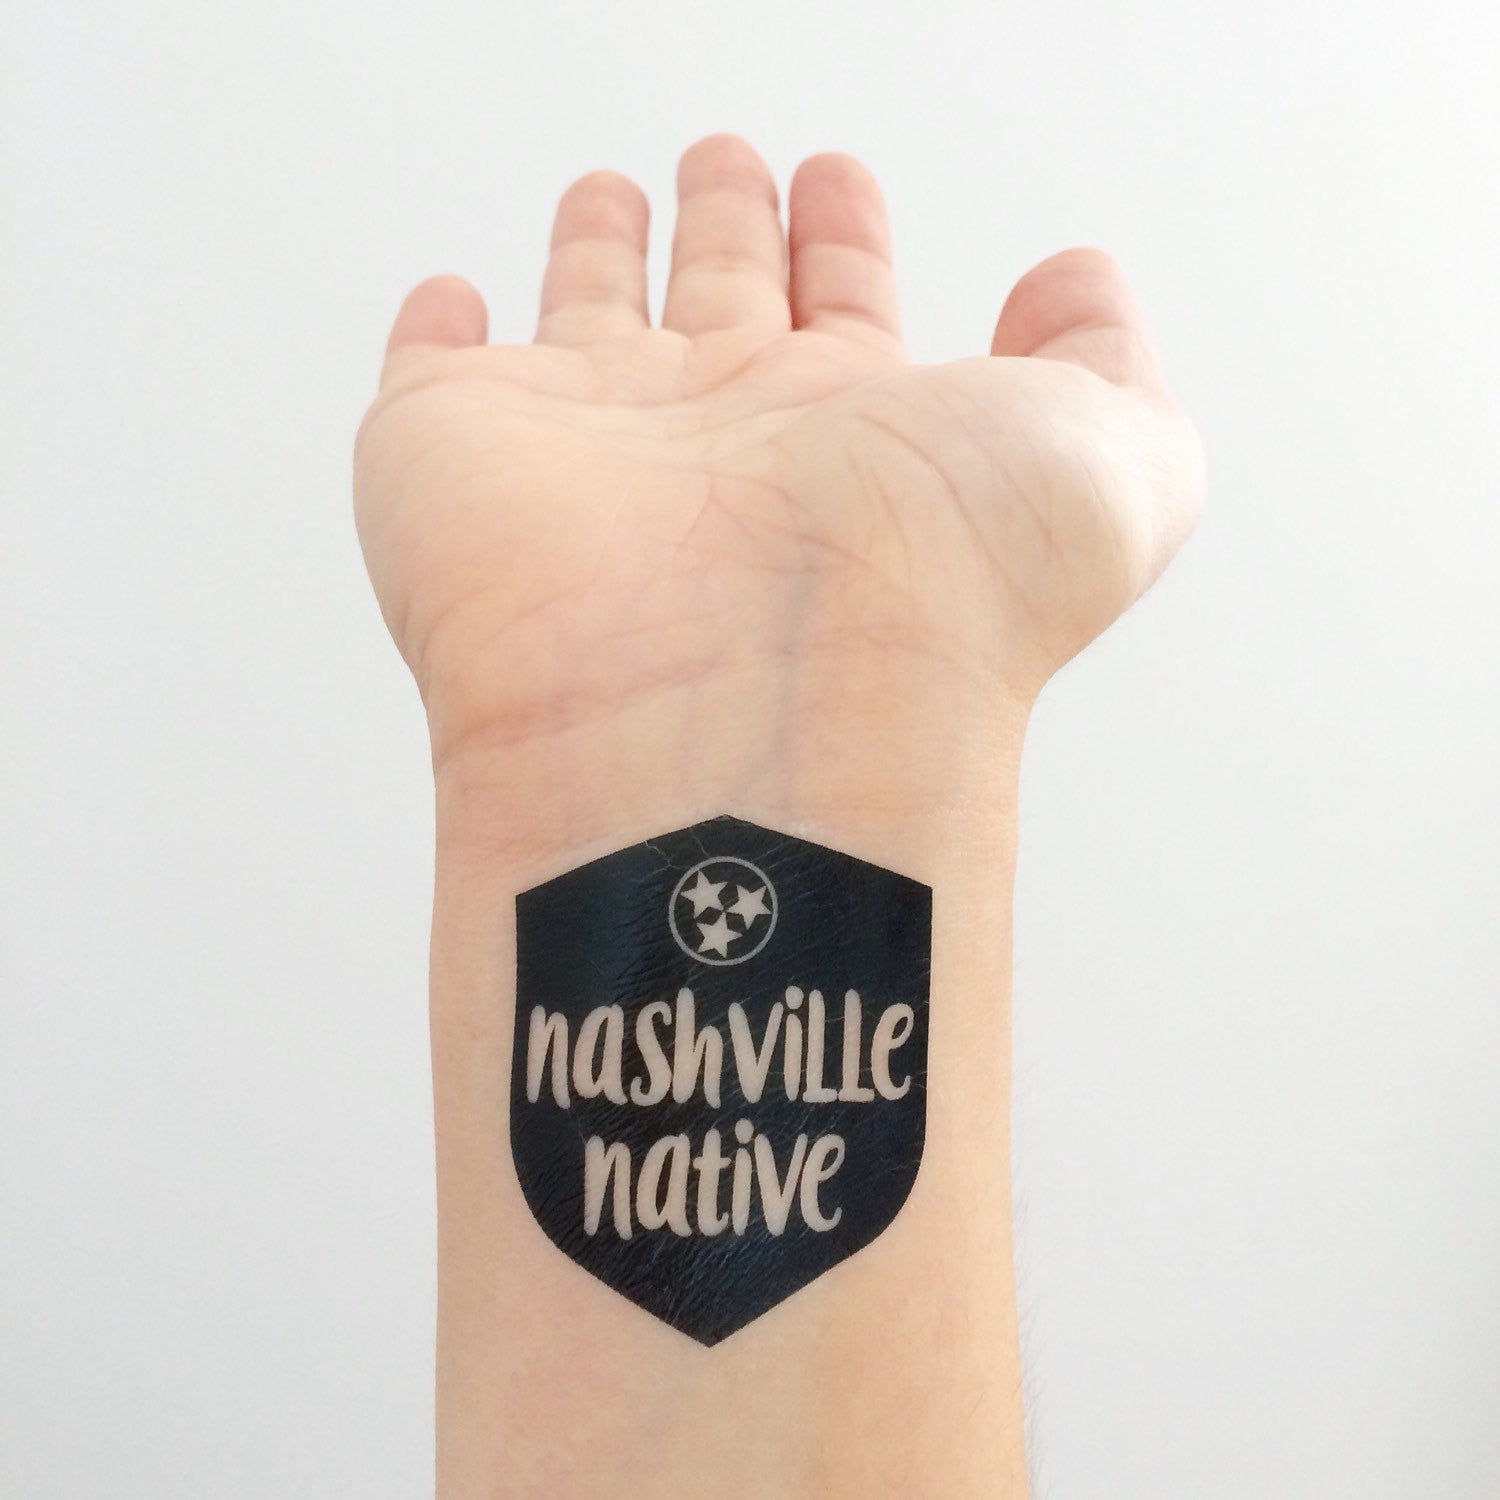 Nashville Native Temporary Tattoos